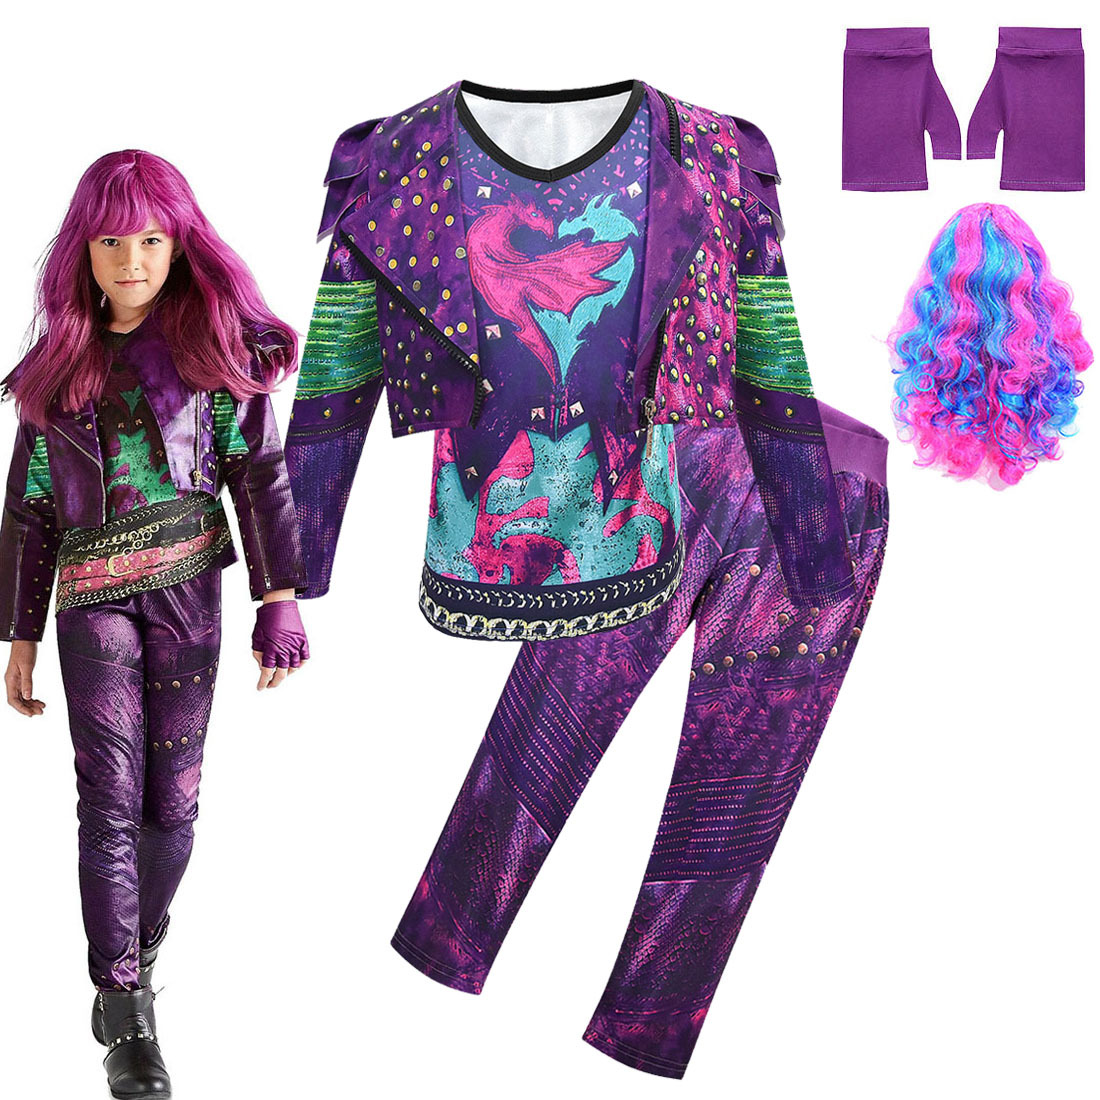 Purple Audrey Costumes Set Girl Halloween Costumes Kids Party Evie Descendants 3 Mal Cosplay Costumes Tees Jacket Wig Pants 4pcs